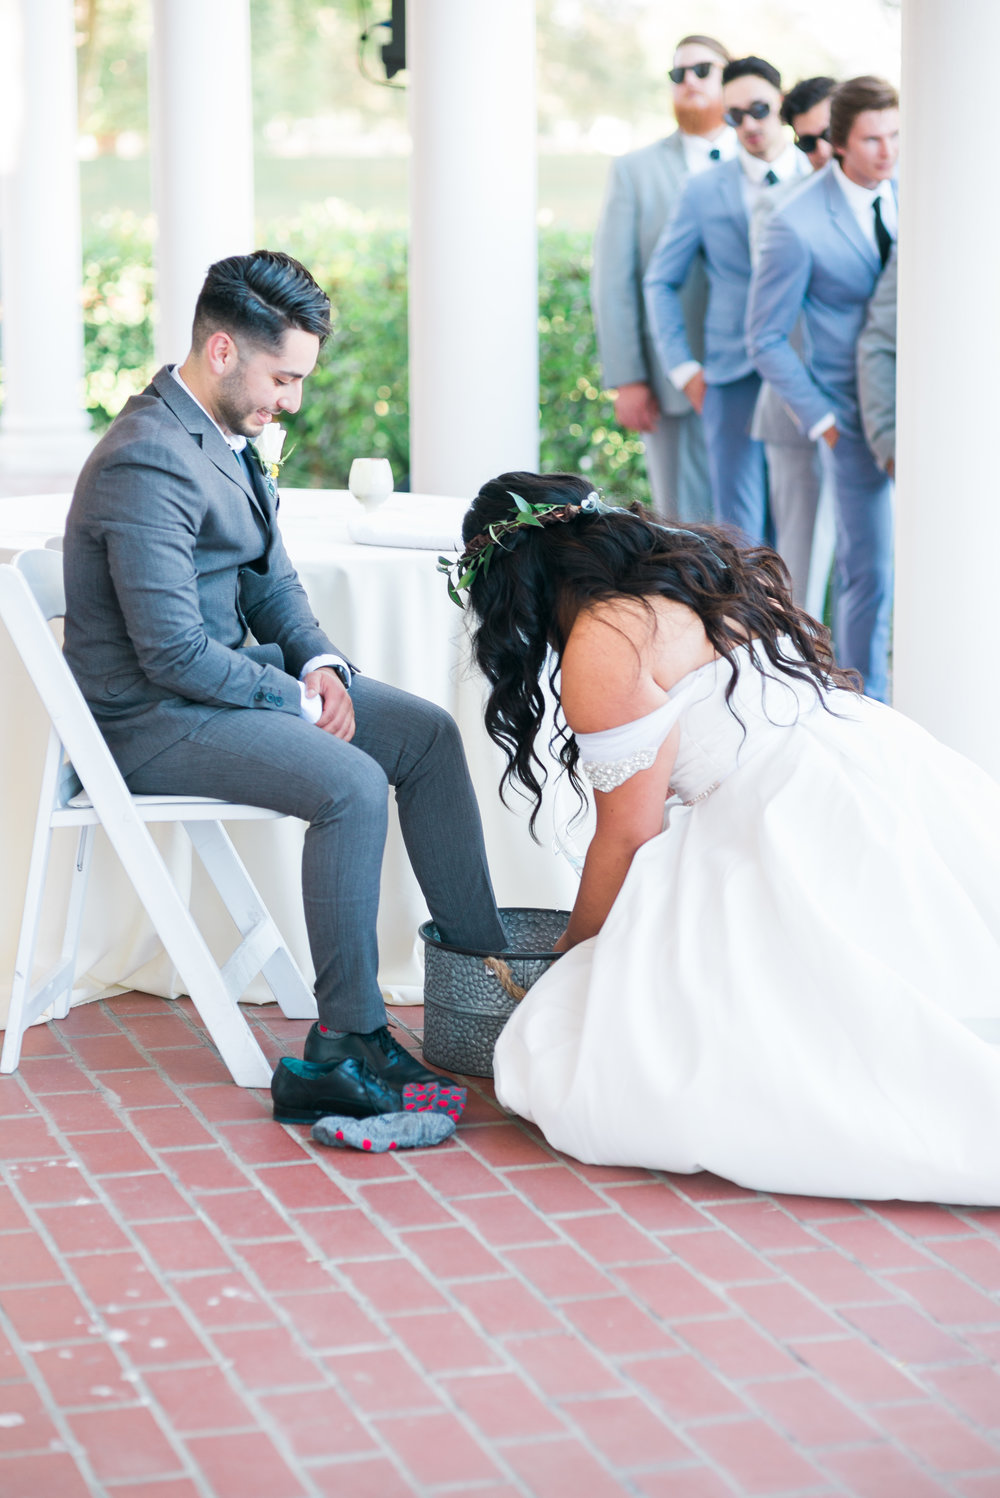 riverside-southern-california-wedding-photographer-ica-images-foot-washing-ceremony